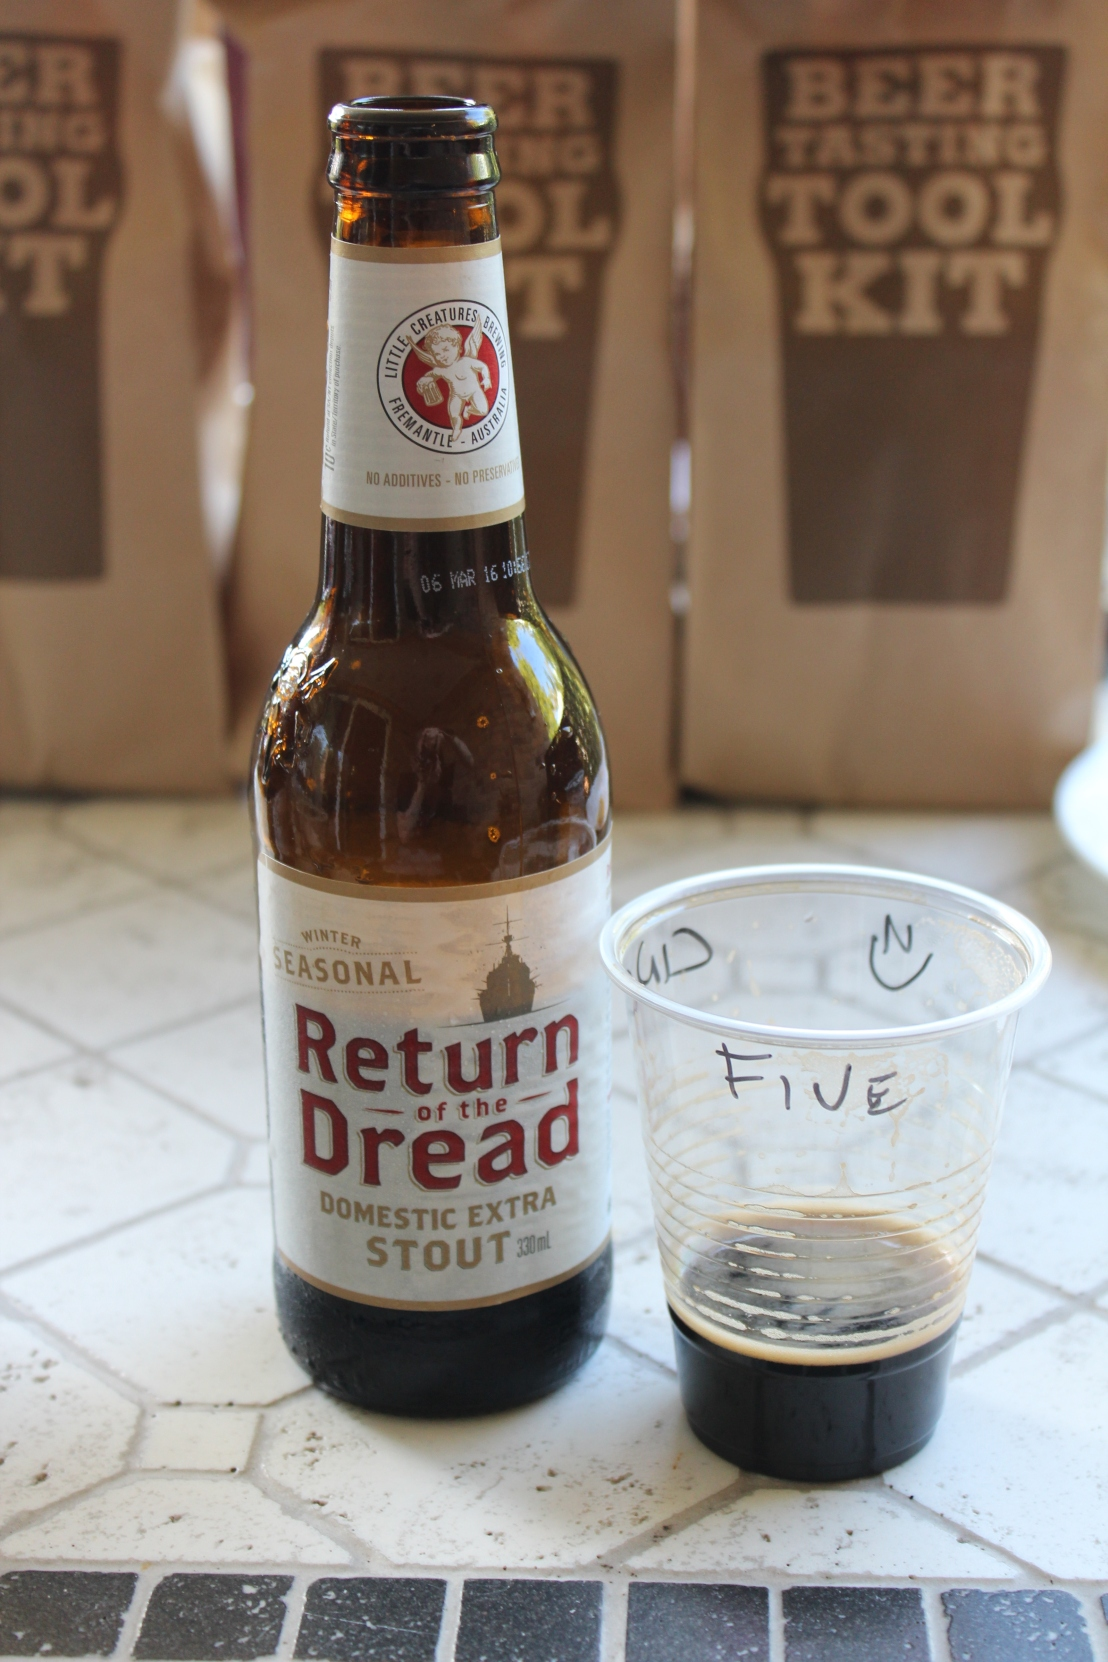 Blind Leading the Blind #4 – Stouts